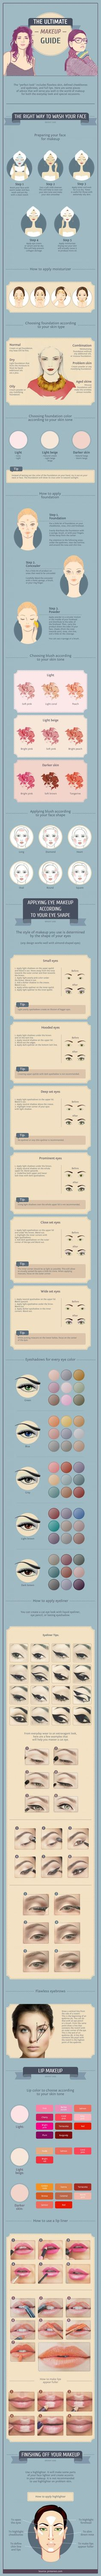 Step-by-step instructions to help you attain an absolutely flawless look. Makeup Guide, Perfect Makeup, Absolutely Flawless, Makeup Routine, Your Perfect, Step By Step Instructions, Brittany, Le Look, Tips